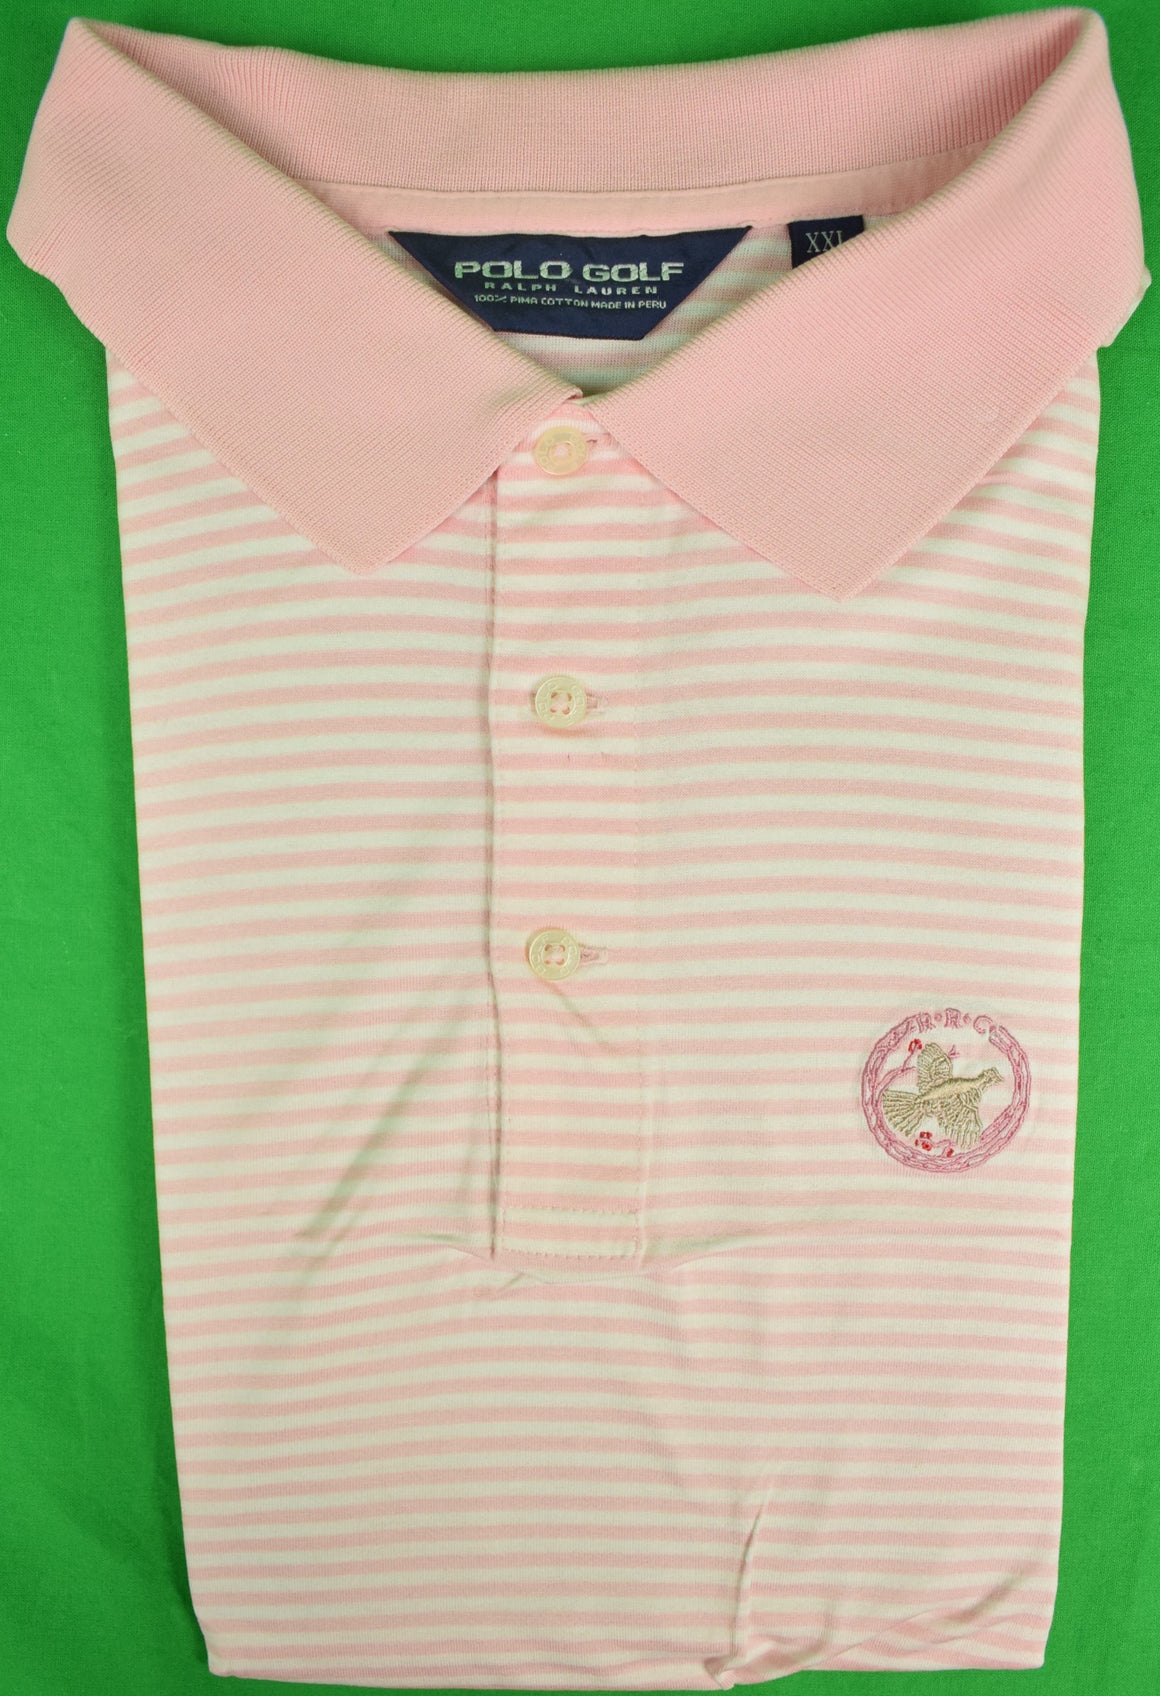 Ralph Lauren Polo Golf Pink/White S/S Stripe Shirt w/ Rolling Rock Club Logo Sz: XXL